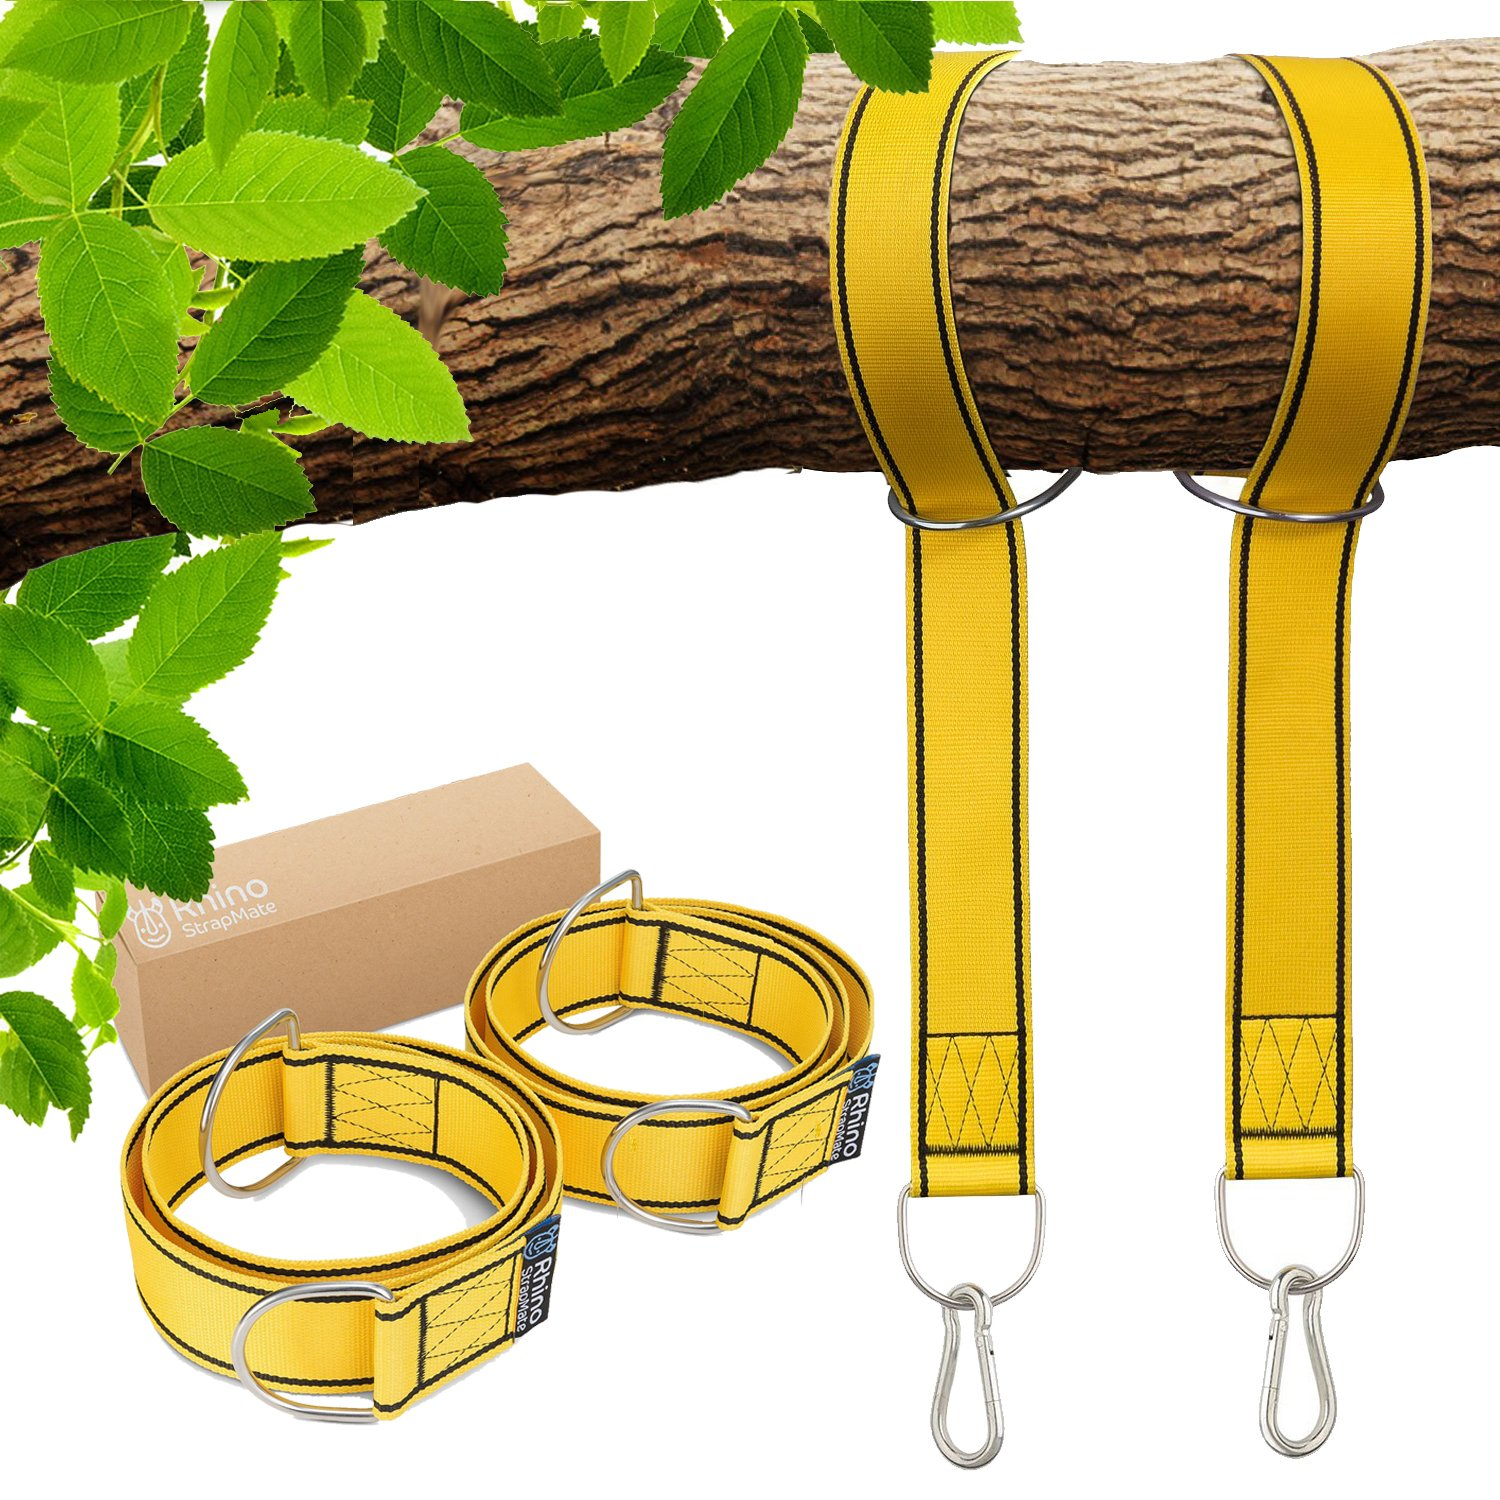 StrapMate Tree & Patio Swing Hanging Kit - Two 4 Foot Straps Holds 2800 lbs (SGS Certified), Free Extra Strong 2 Snap Carabiners - Fast & Easy Way to Hang Any Swing & Hammock - No Tools Needed